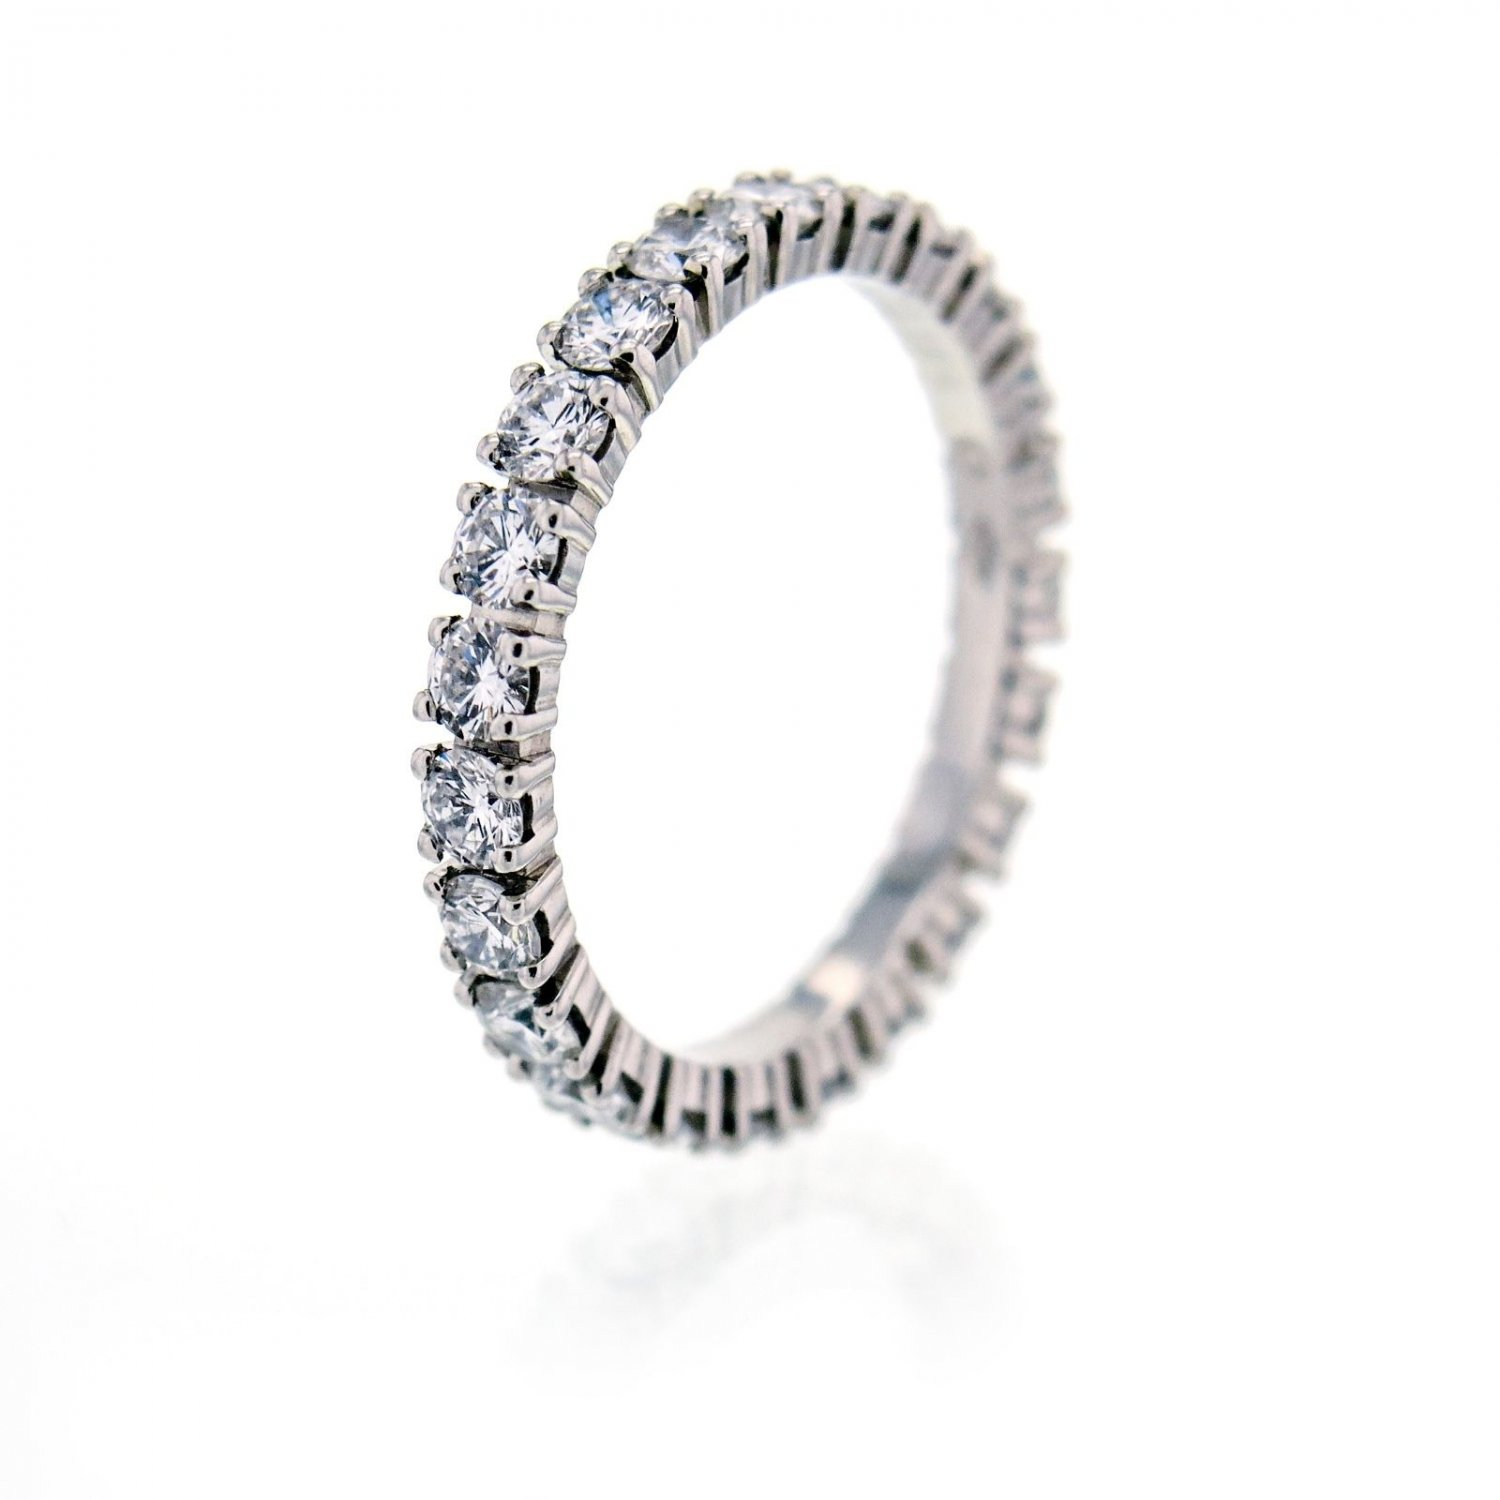 Cartier Eternity Ring 1.60ct Diamond Platinum Wedding Band, Size 7 with Box